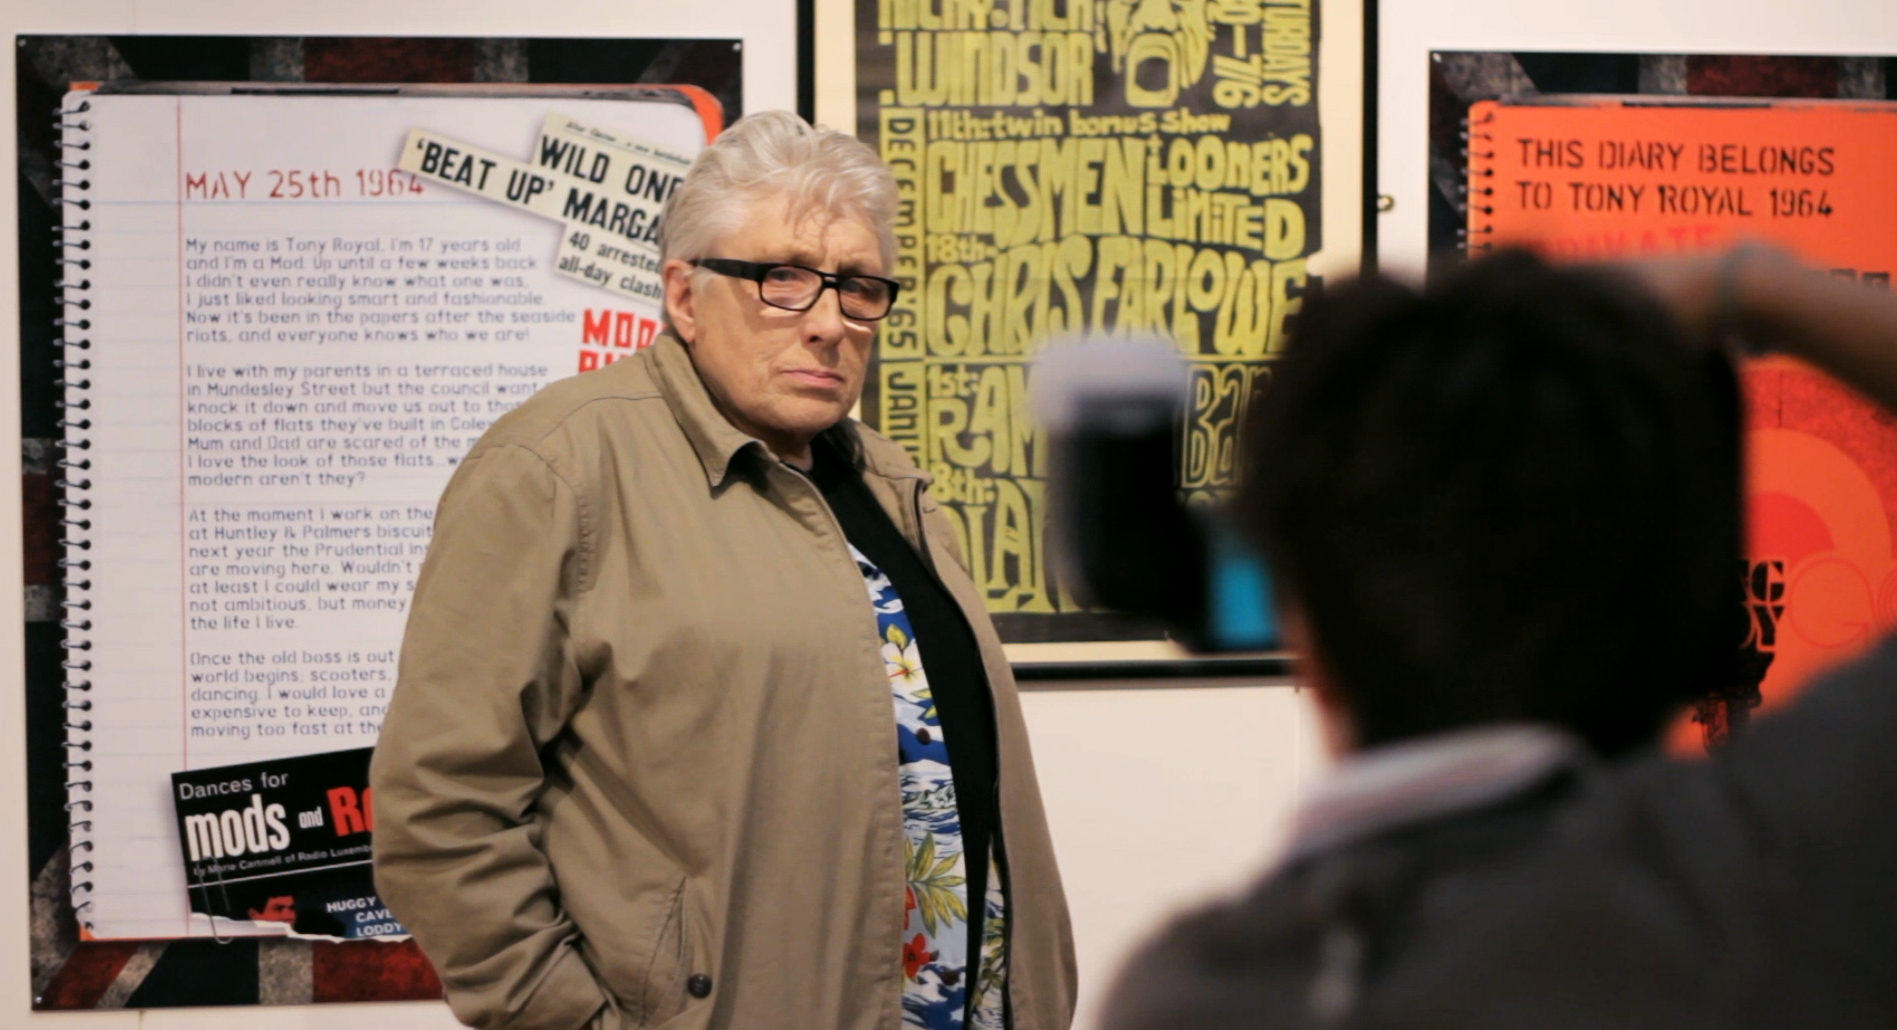 Chris Farlowe Having his Picture Taken by a Local Press Photogragher in Reading